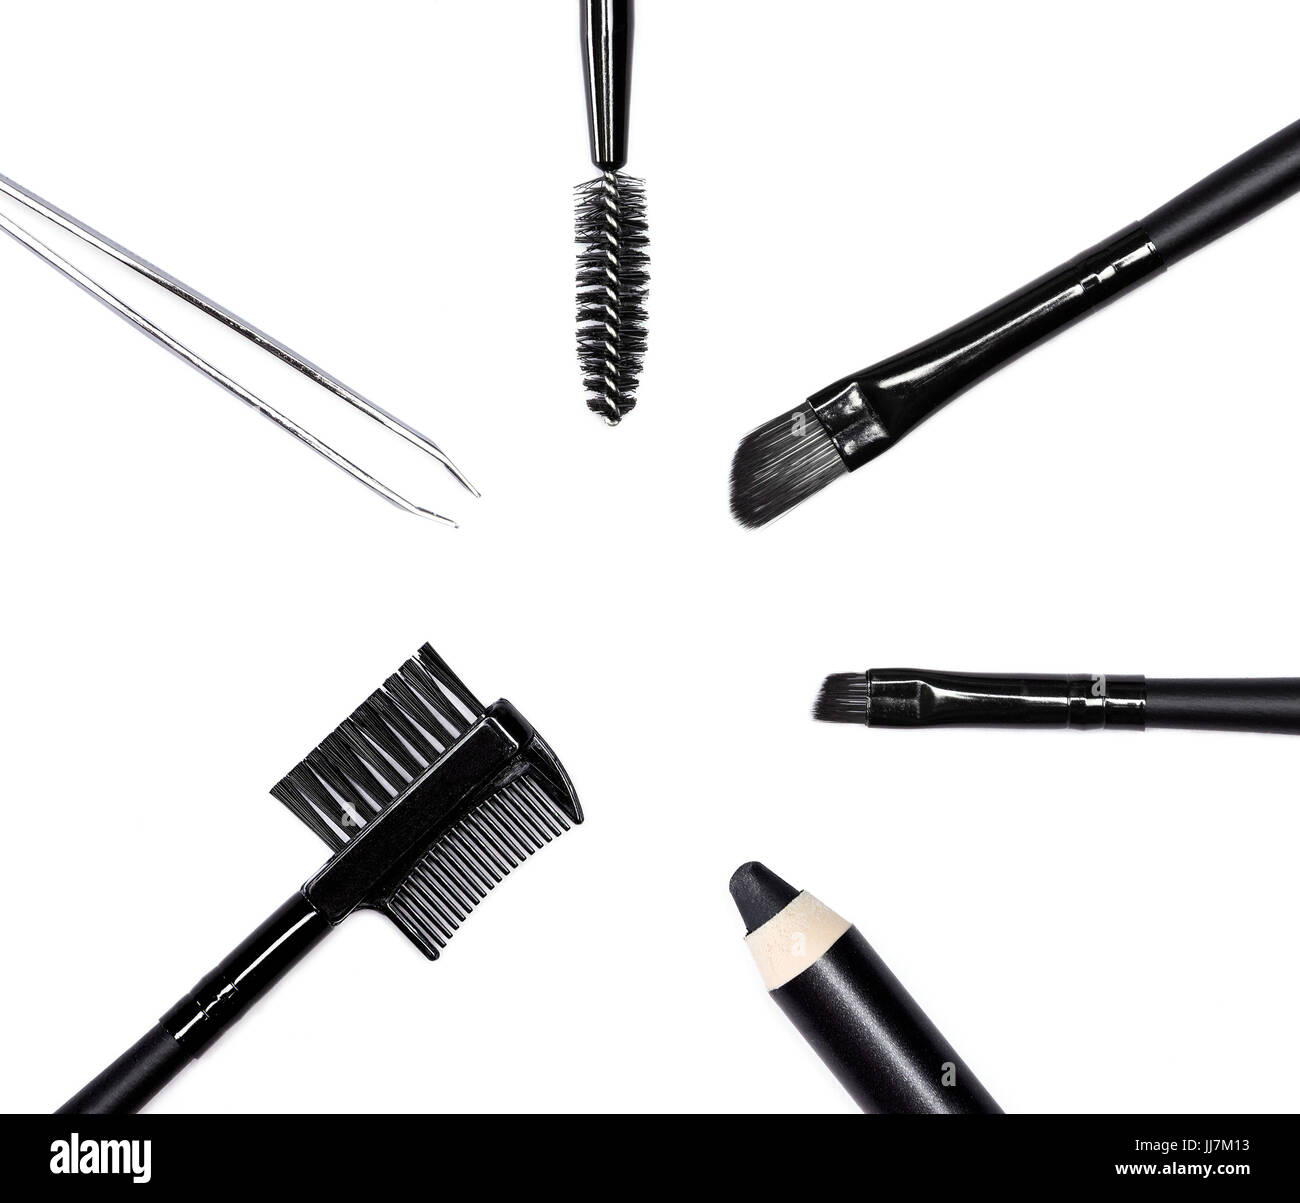 Accessories for care of the brows: eyebrow pencil, angle brushes made from natural bristles, spooly brush, tweezers - Stock Image